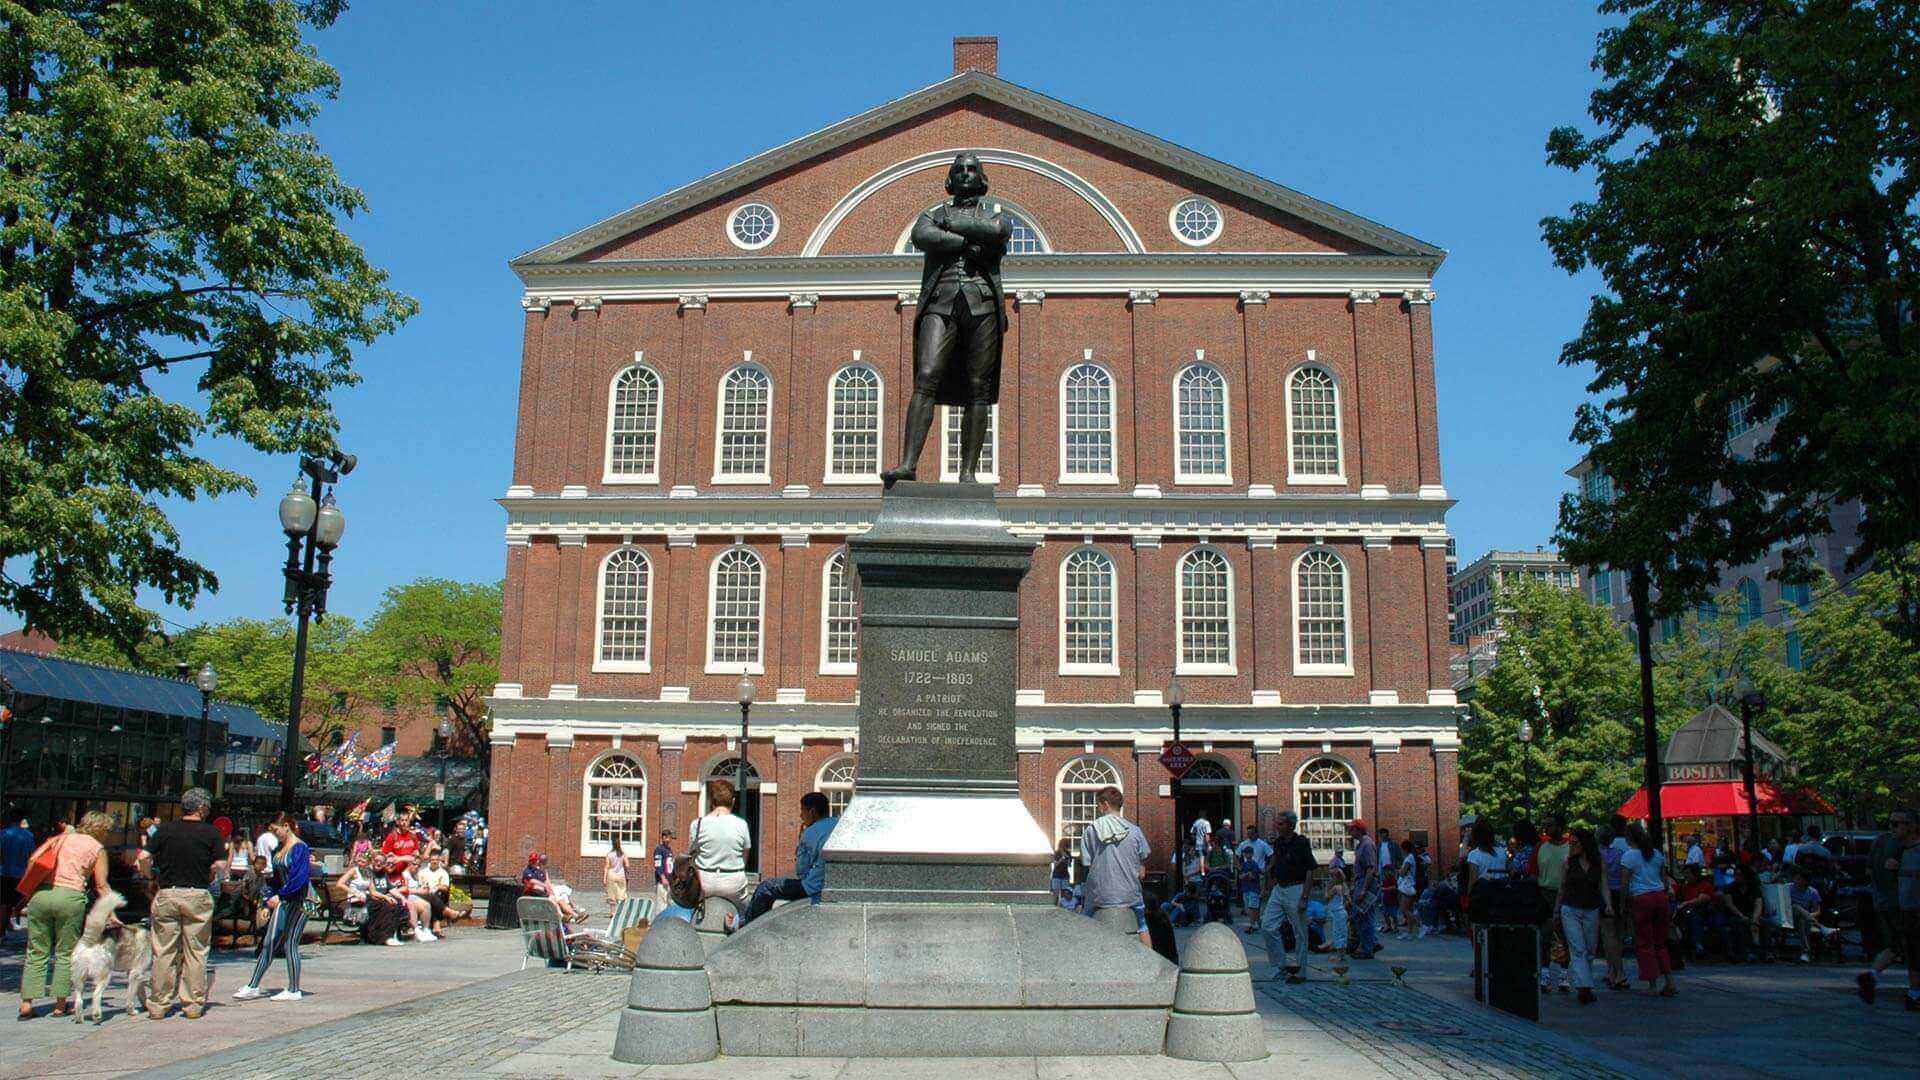 Front view of Samuel Adams statue with Faneuil Hall in the background in Boston